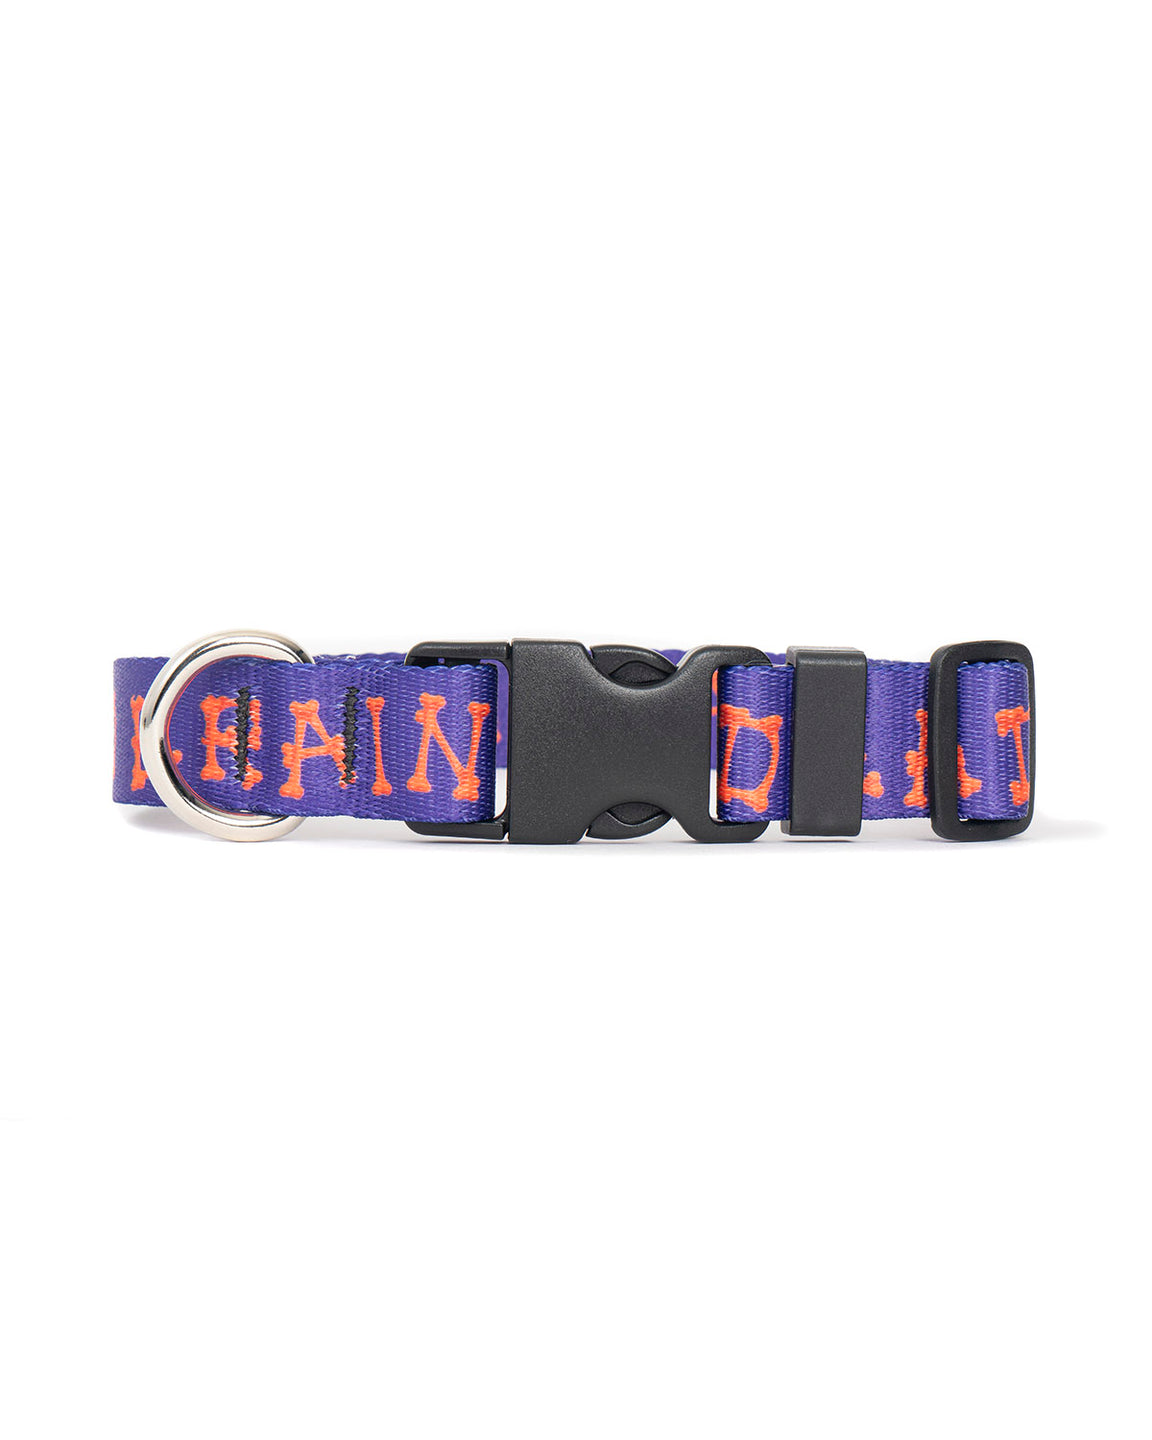 Boneman Dog Collar - Purple